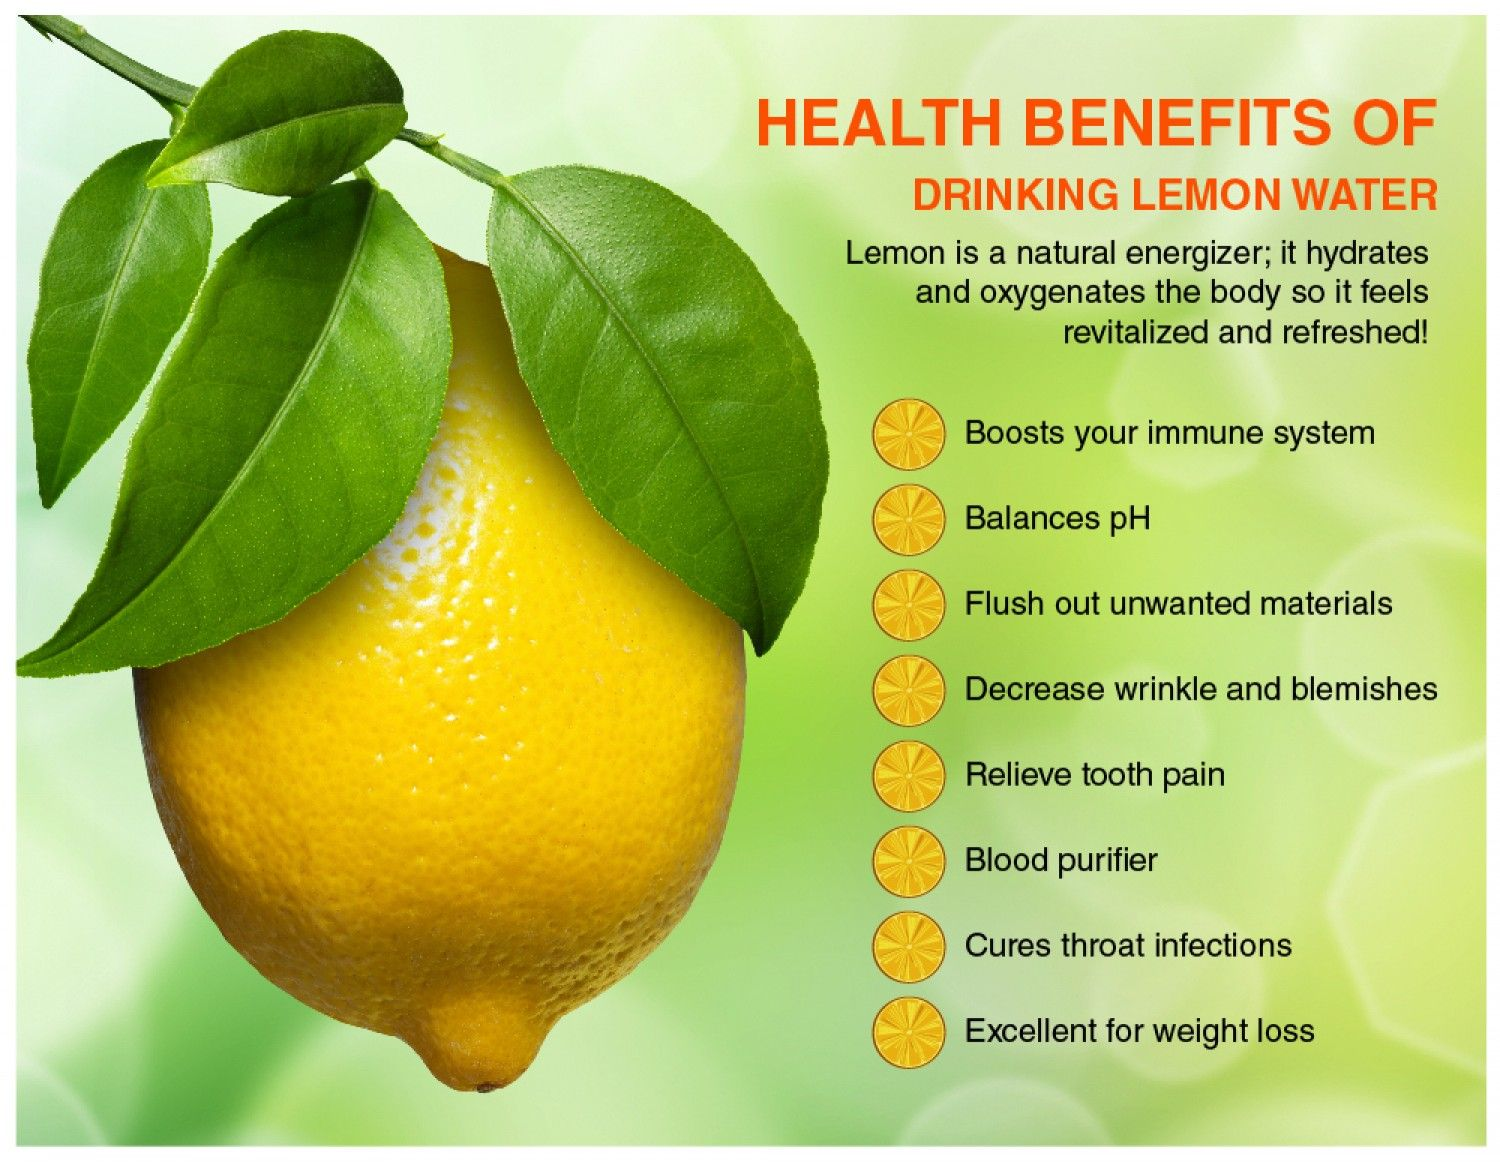 Effects Of Drinking Lemon Water During Pregnancy